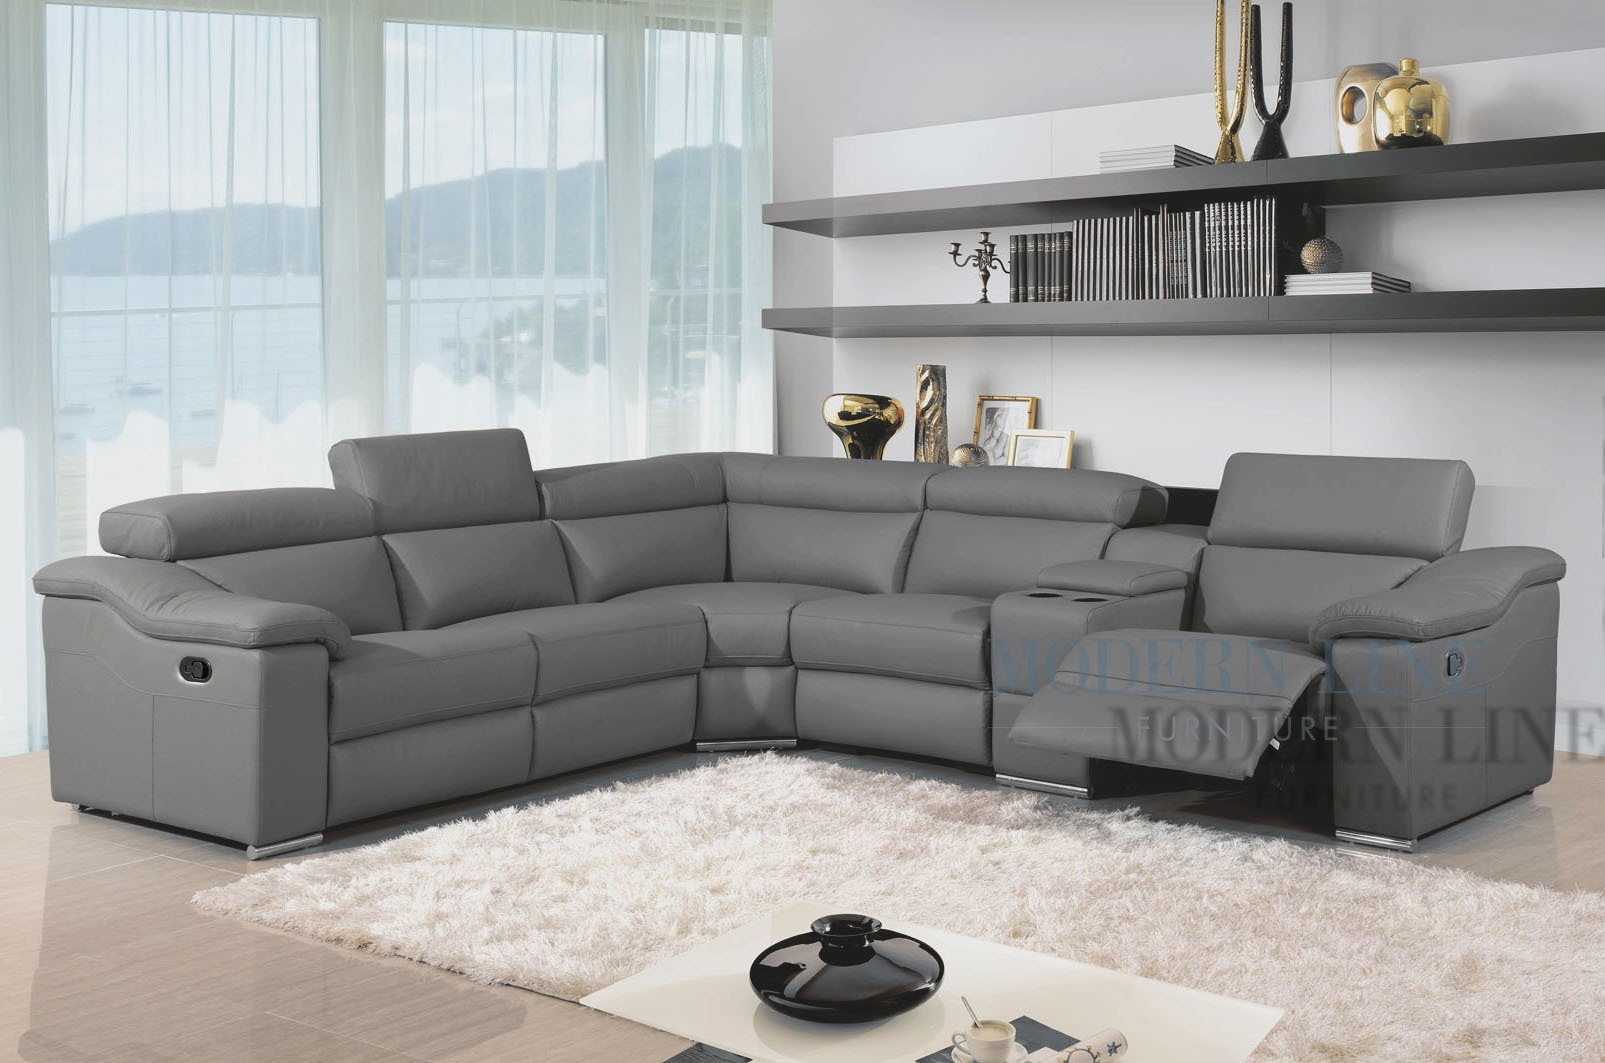 Home Decorators Collection Living Room Furniture Within Rooms To Inside Cindy Crawford Sofas (#9 of 12)